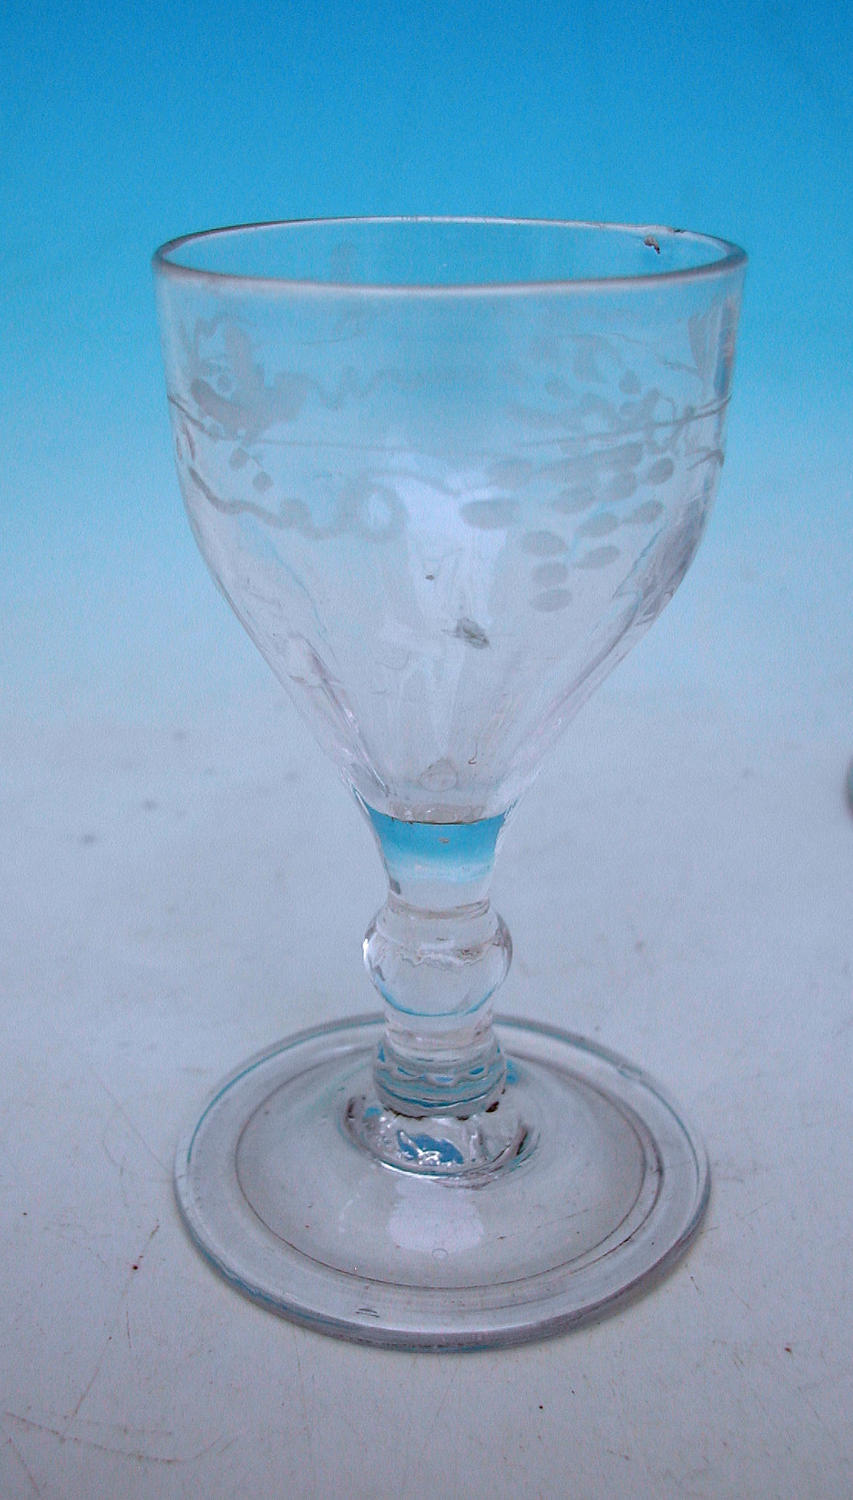 18thc Engraved Faceted Ogee Shaped Wine Glass. English. C1730-40.